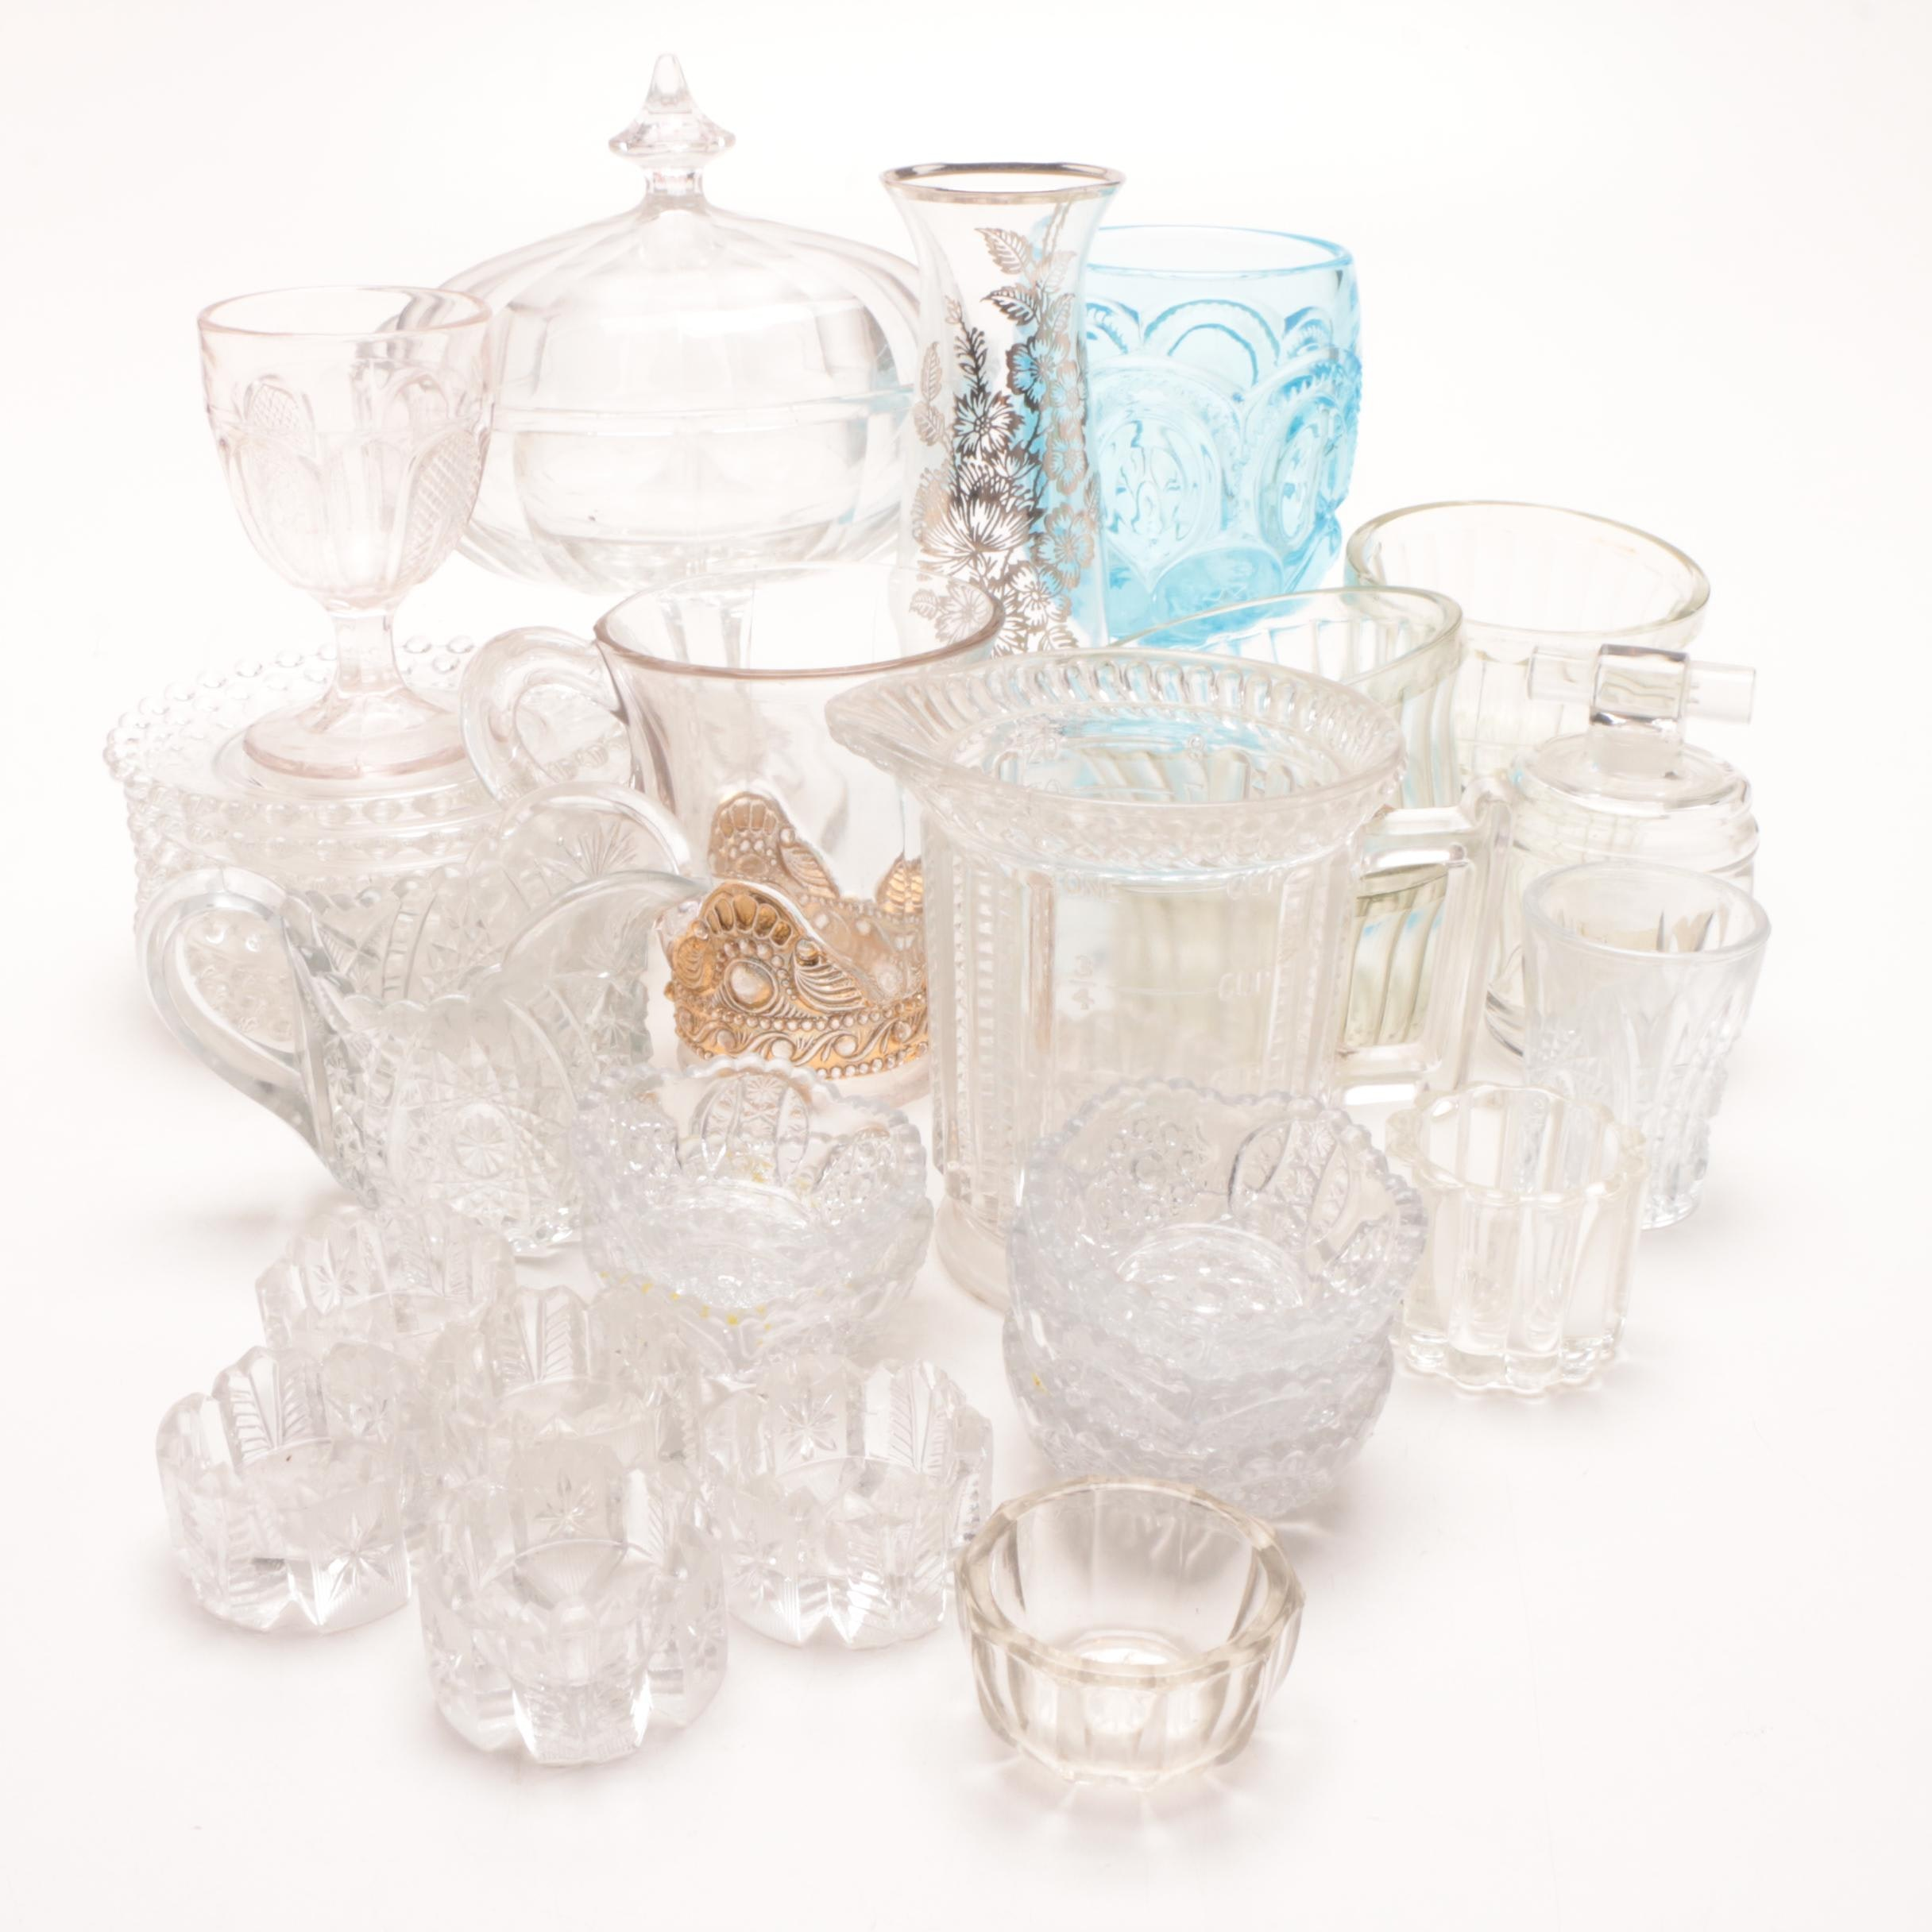 Grouping of Pressed Glass Tableware